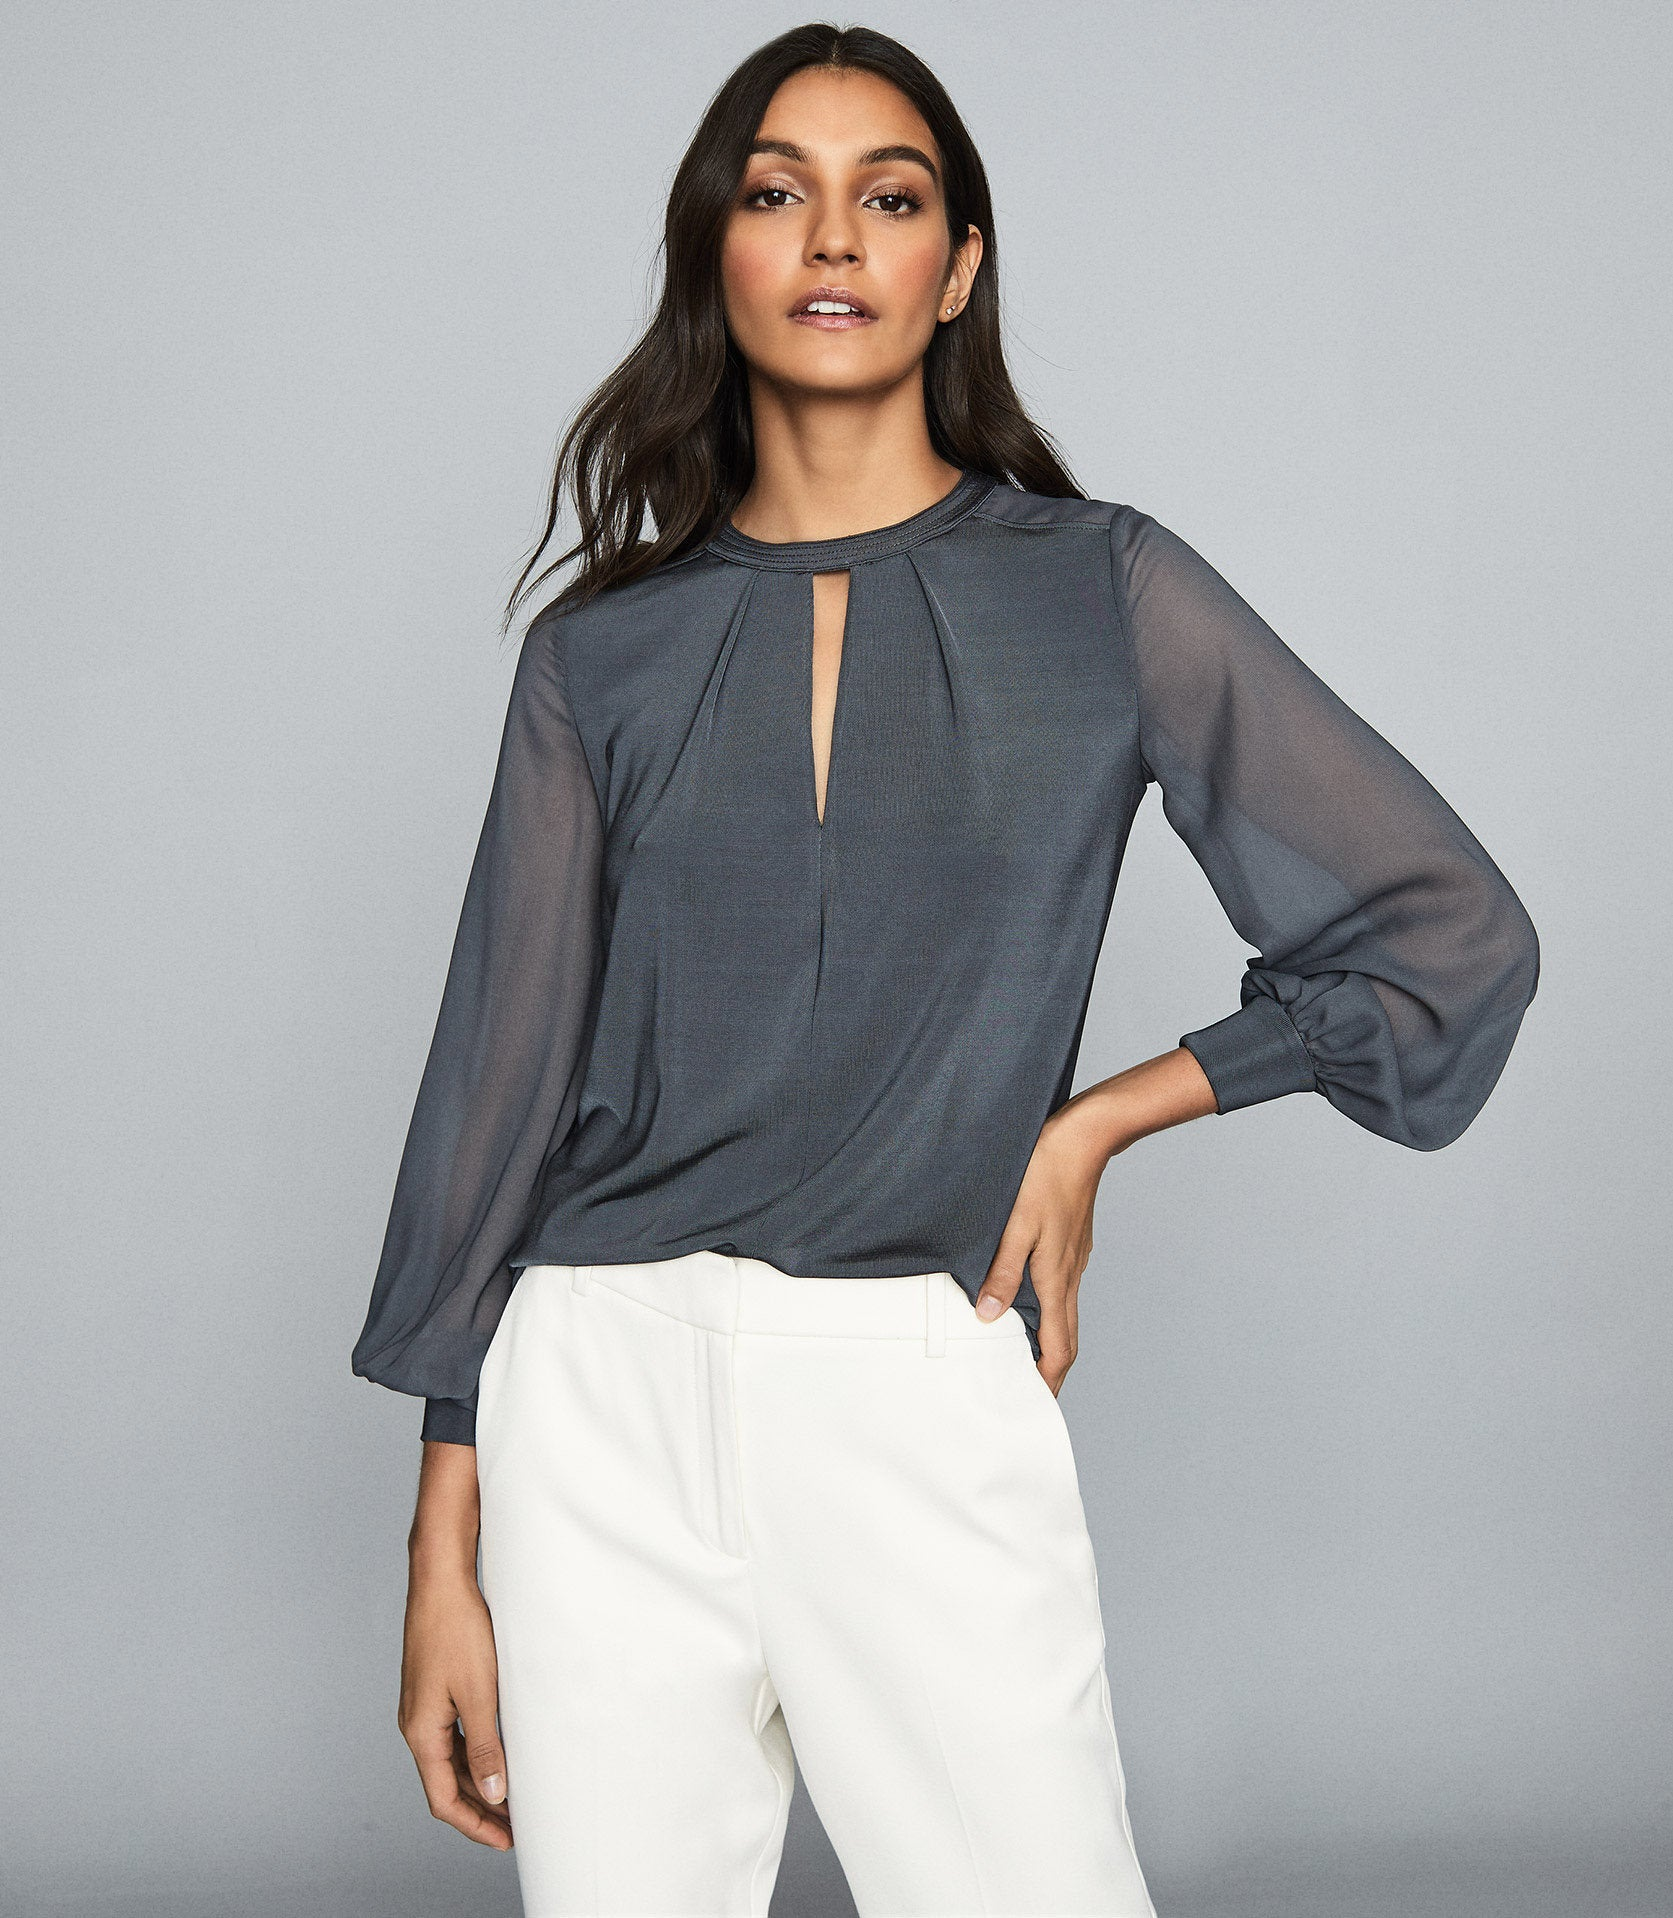 reiss tops